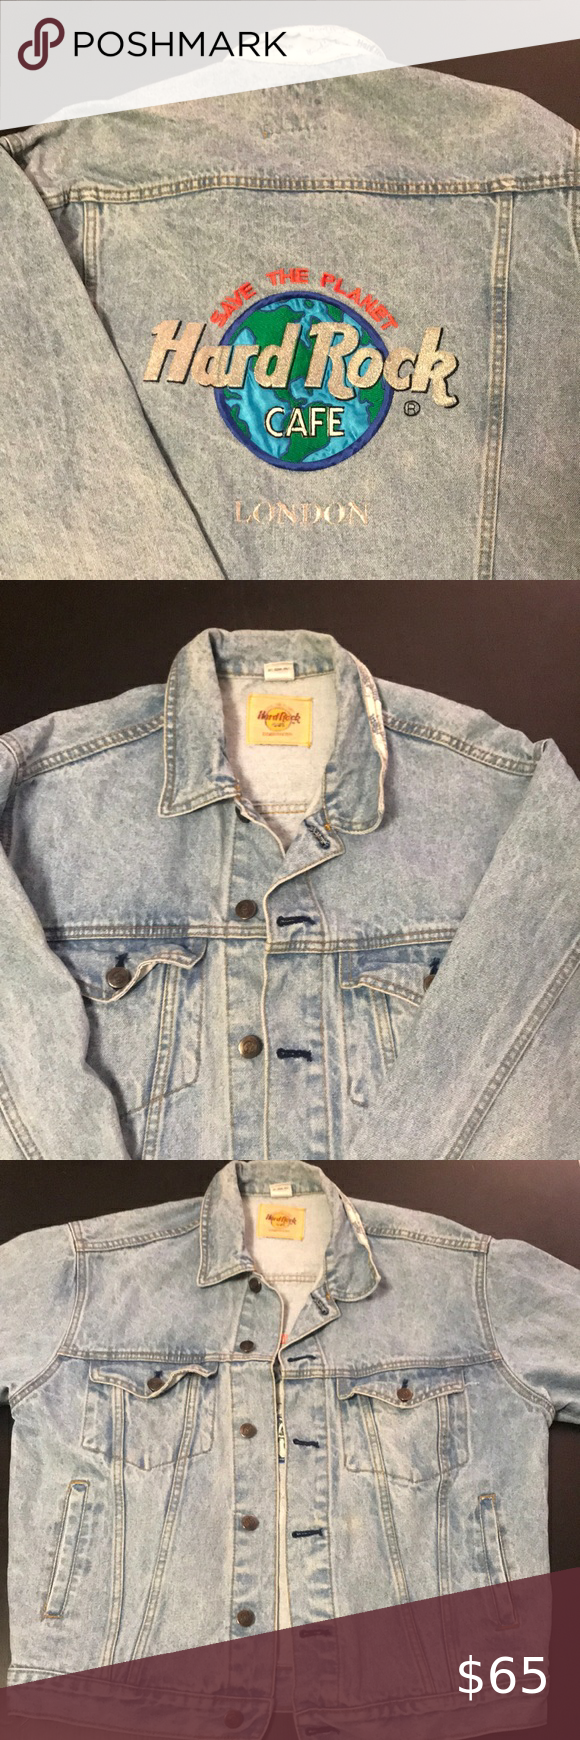 Vintage Hard Rock Cafe Jean Jacket Womens Medium Made In Taiwan 100 Cotton Excellent Condition No Rips Tears Or Jean Jacket Jean Jacket Women Hard Rock [ 1740 x 580 Pixel ]